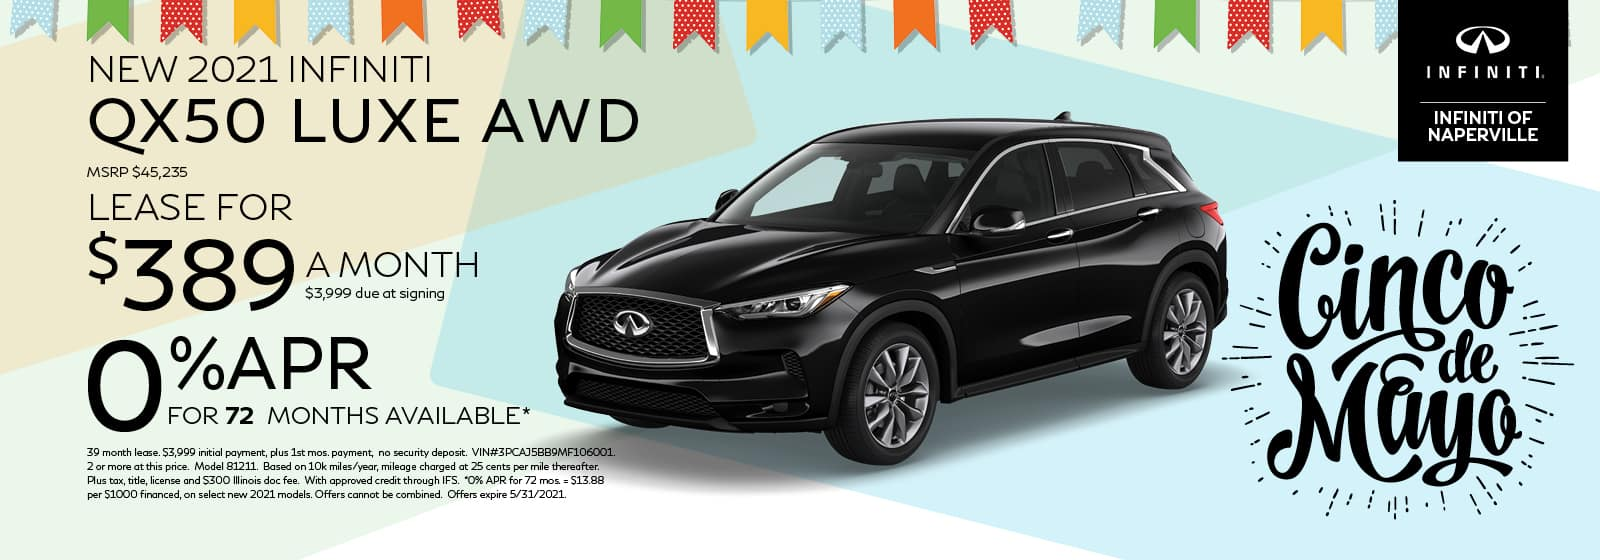 2021 INFINITI QX50 Lease or Finance Offer   INFINITI of Naperville